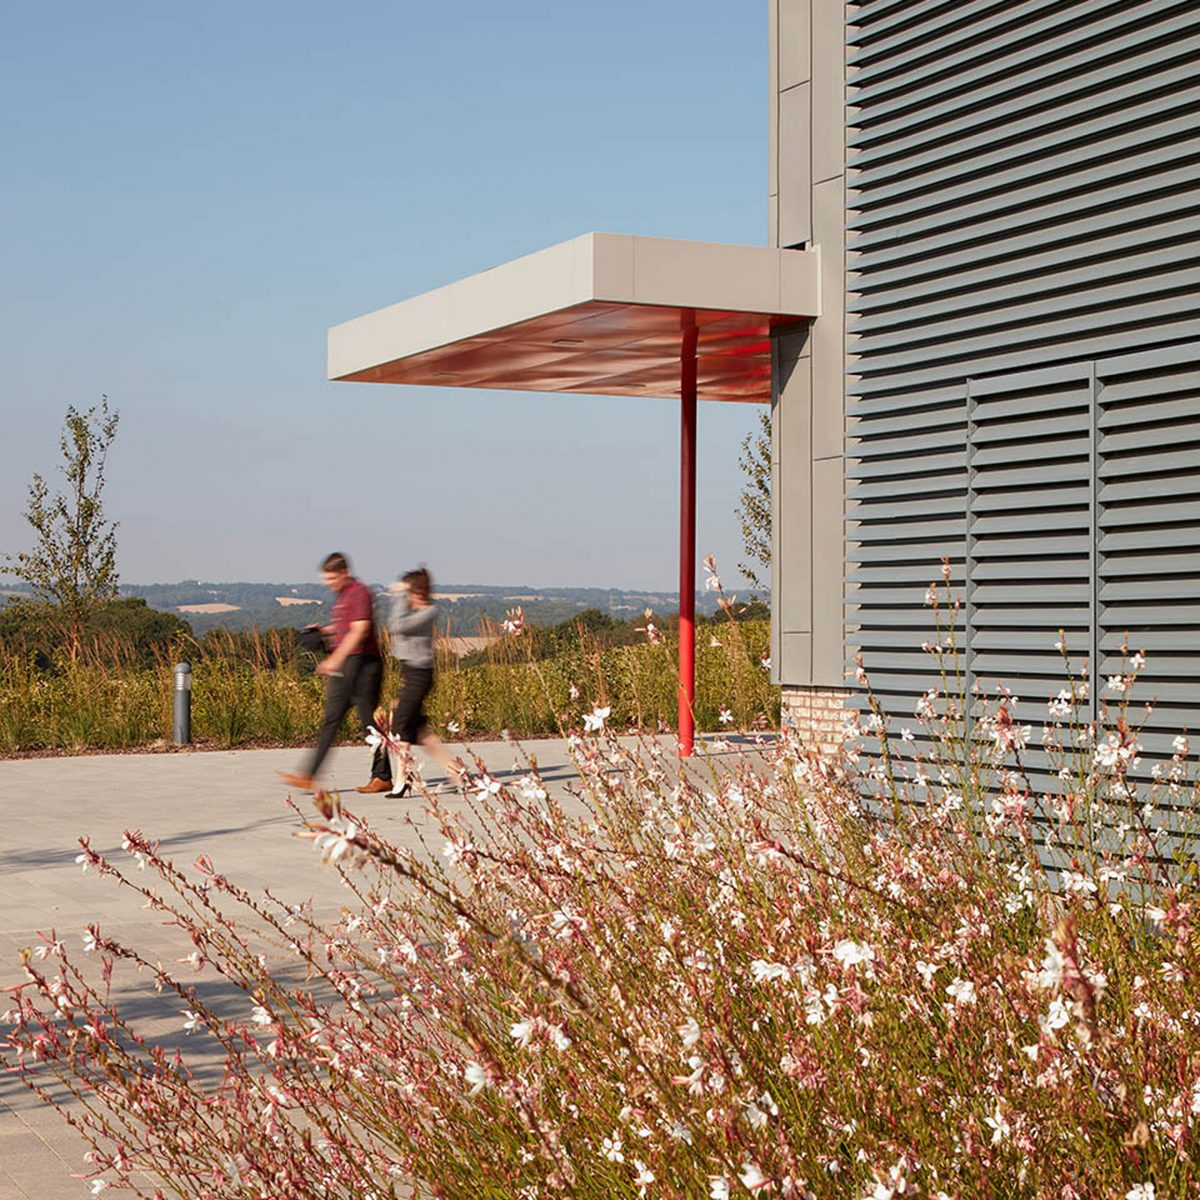 Bex Hill sussex business park offices architects jerseyarchitecture3